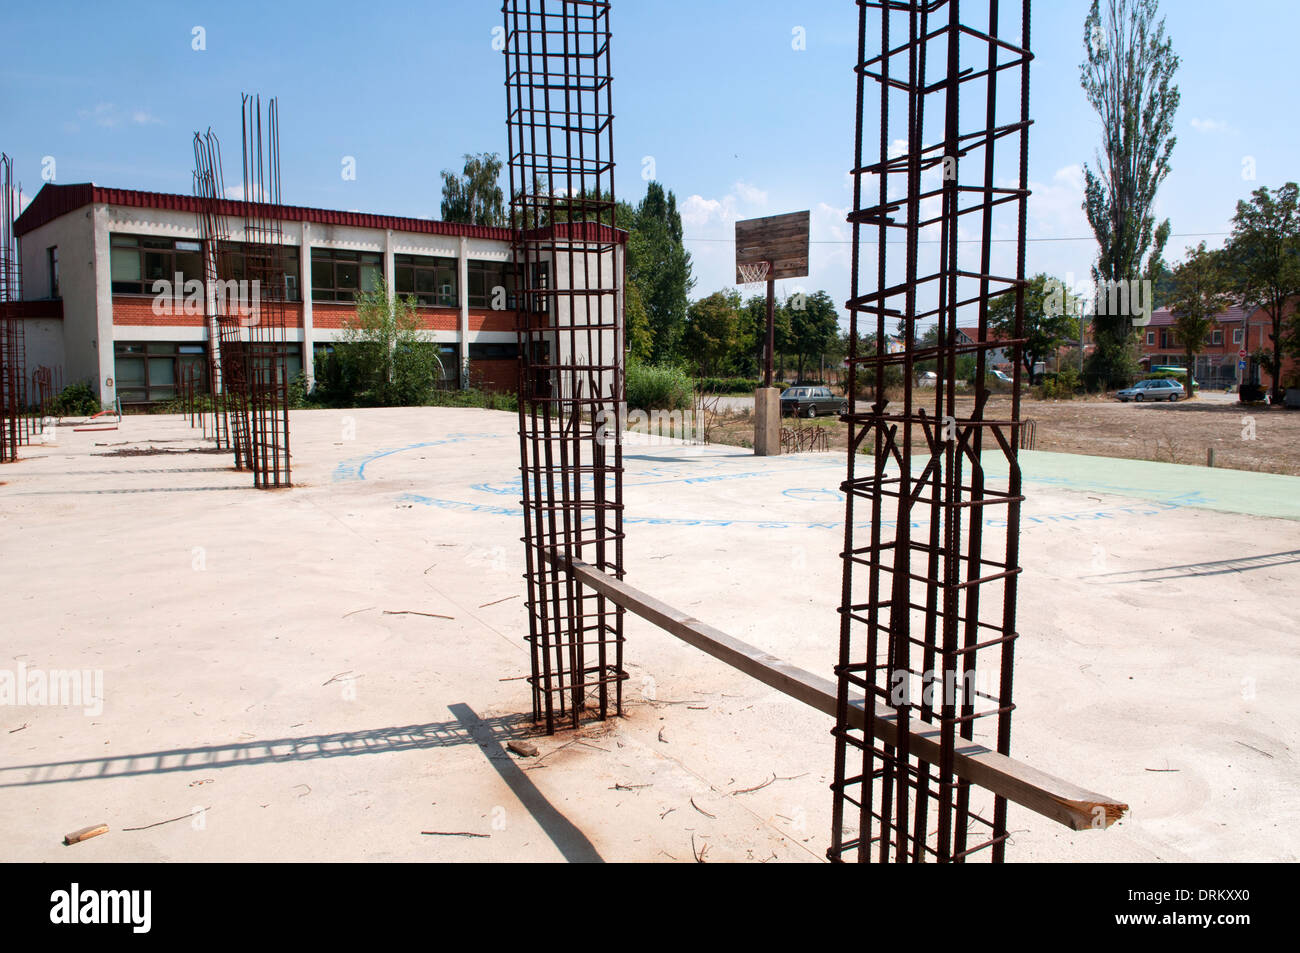 A basketball court among rebars, Peć, Kosovo Stock Photo